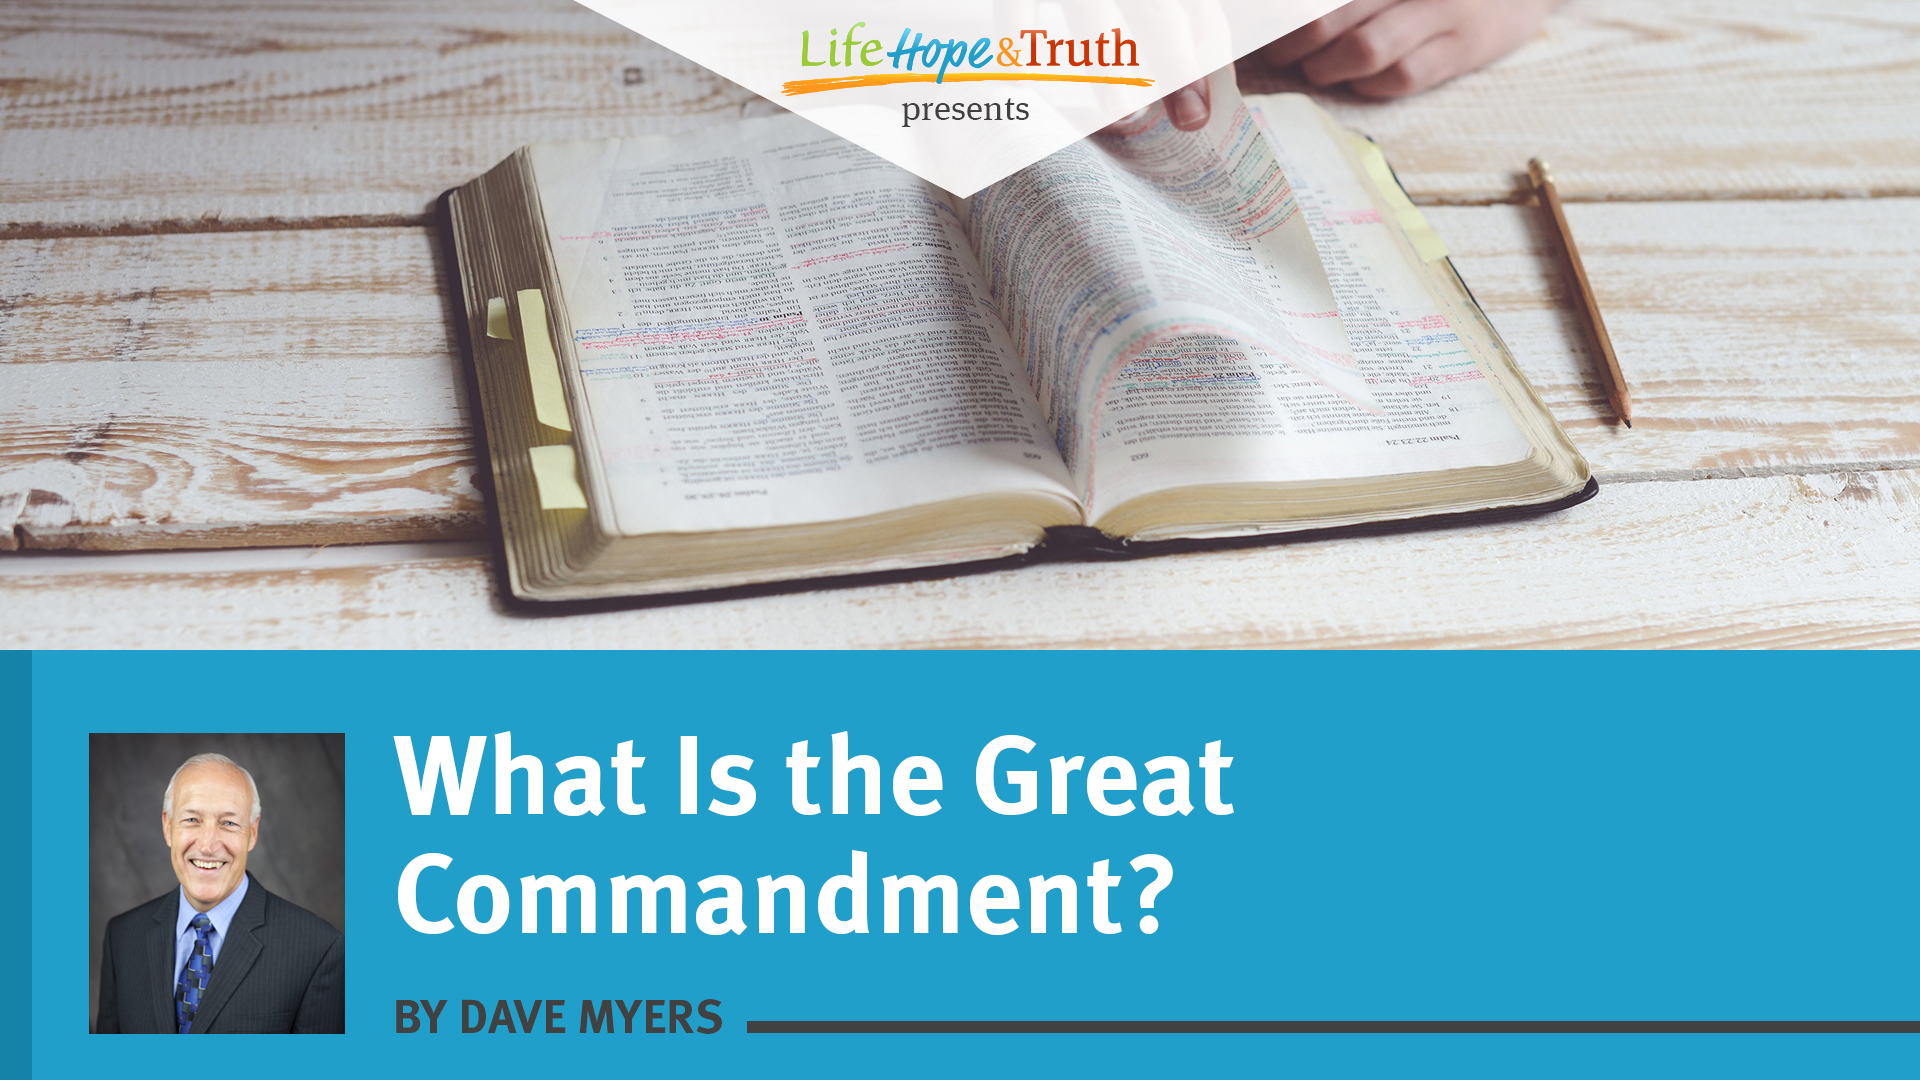 What Is the Great Commandment?